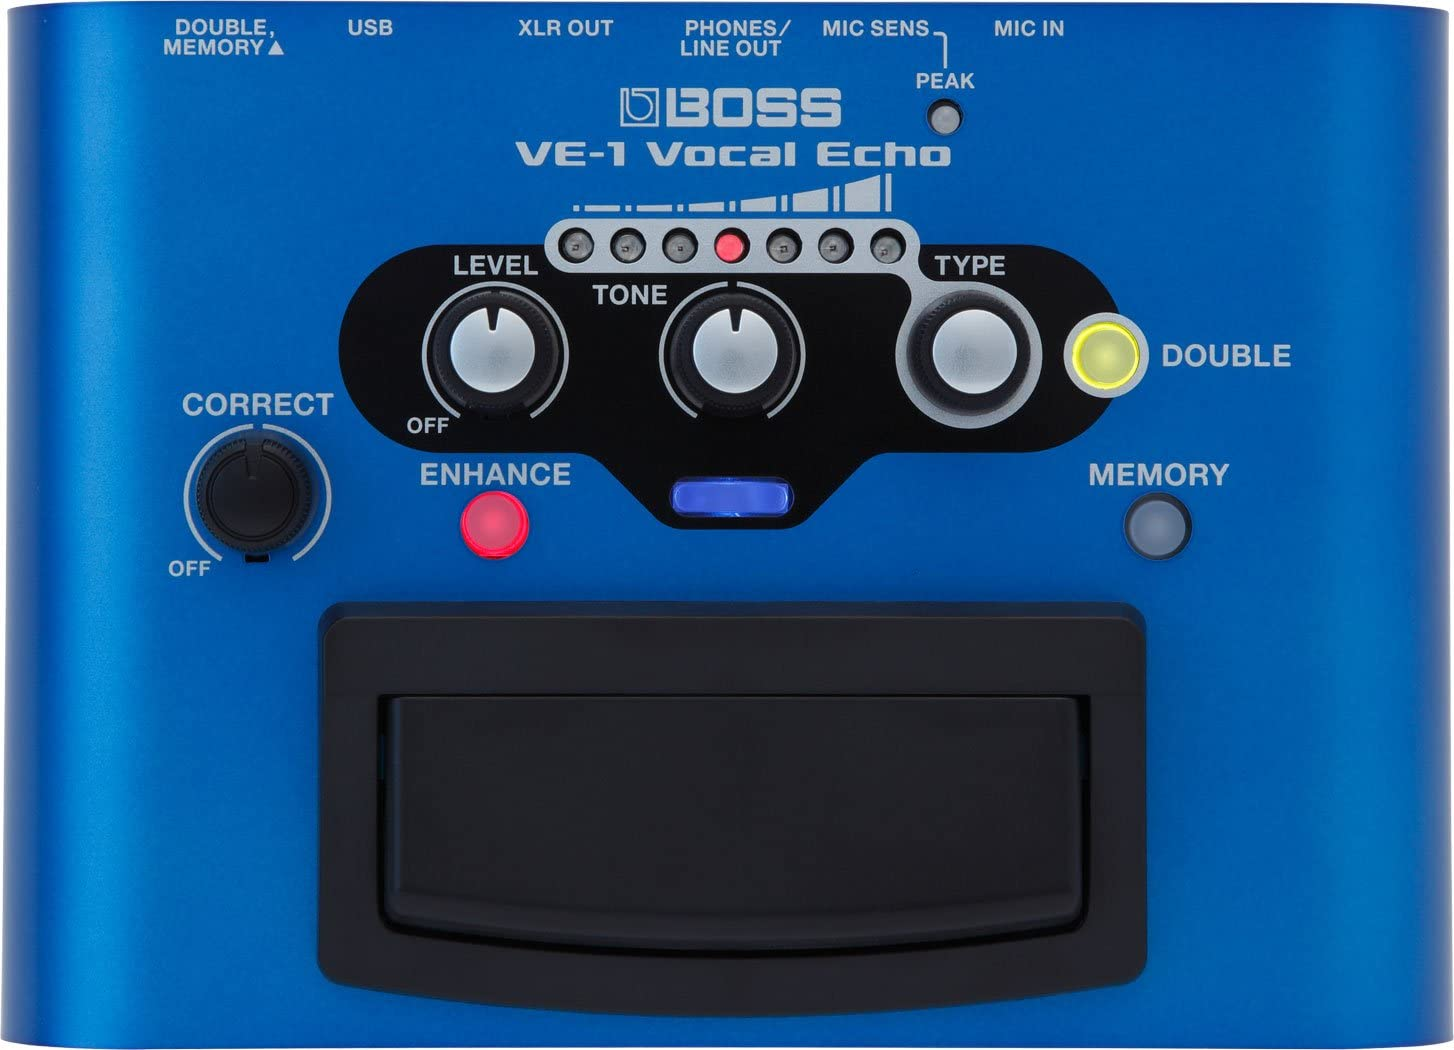 BOSS Vocal Echo Effects Processor Stompbox Guitar Pedal, (VE-1) (VE-1)